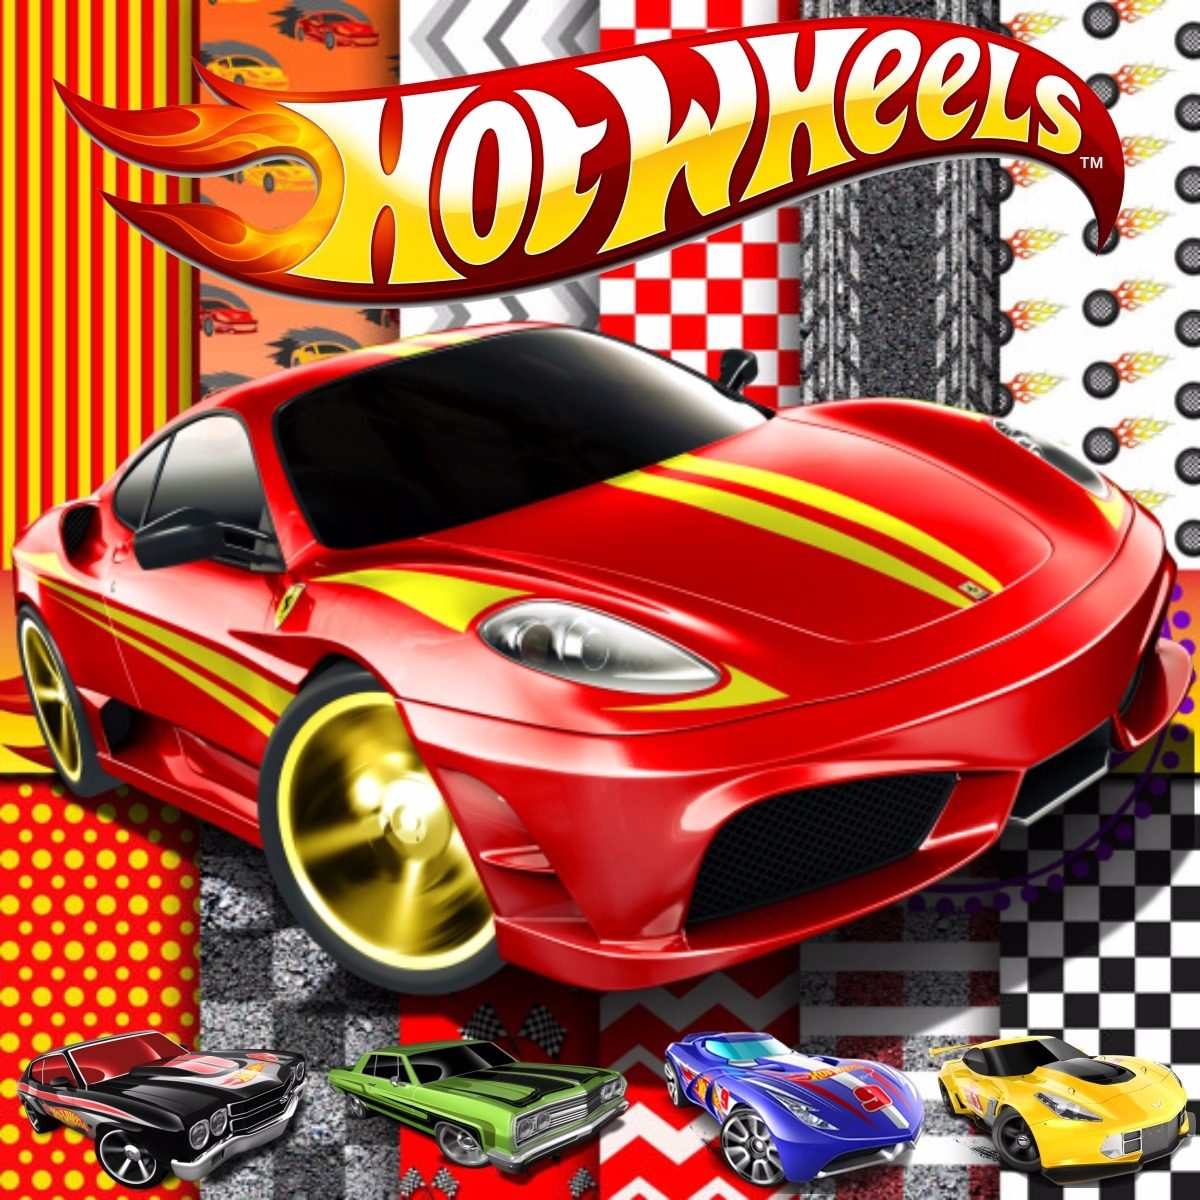 Scrap1real Kit Scrapbook Digital Hot Wheels Hotwheels 1 R 10